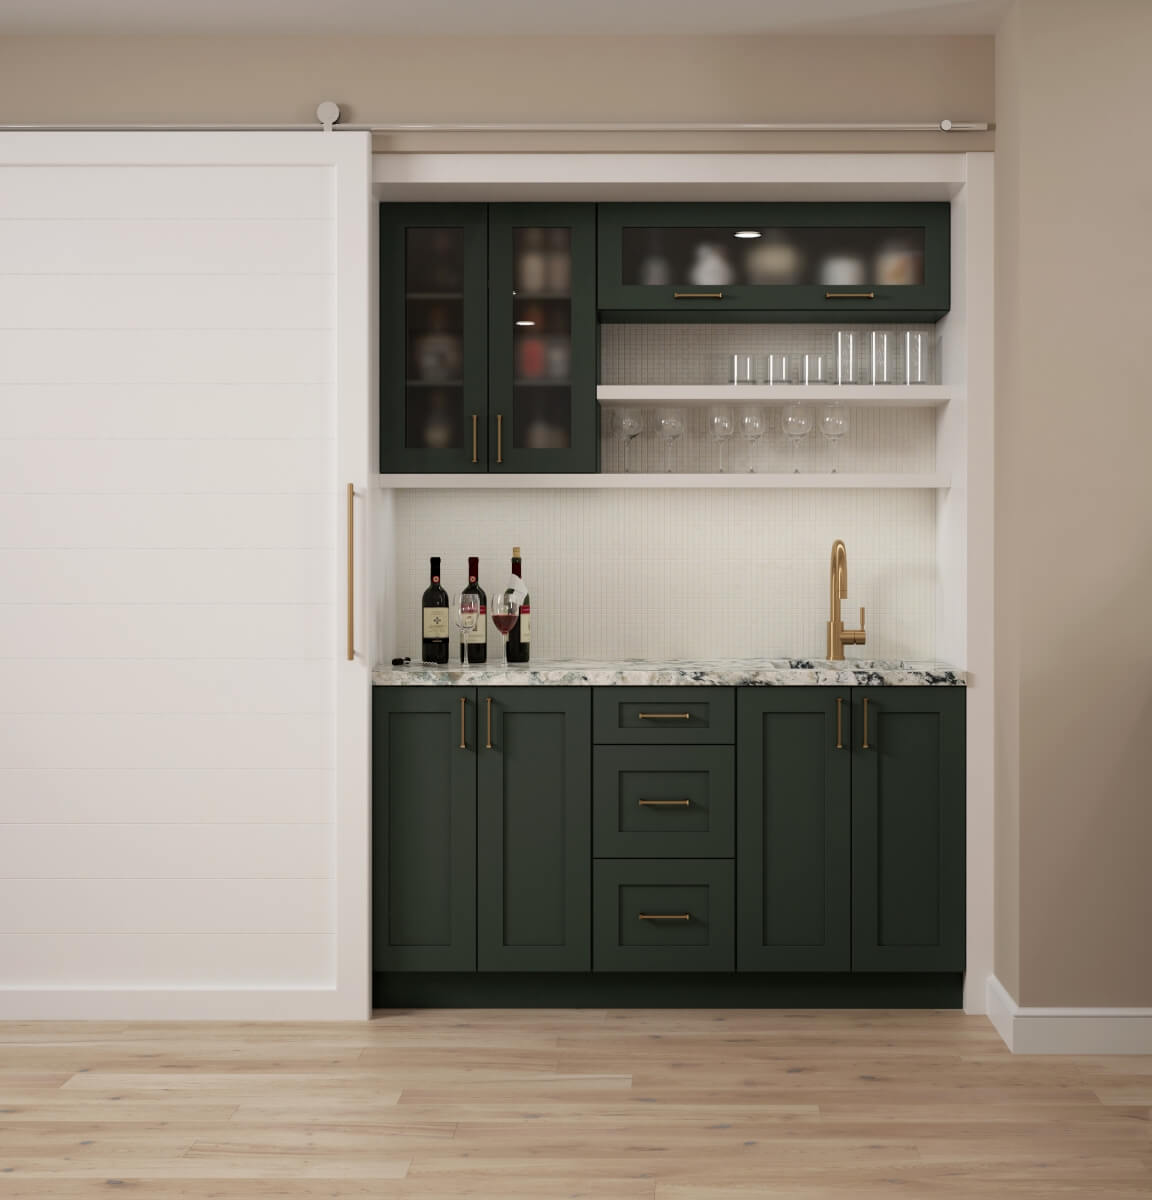 Dura Supreme cabinetry with a